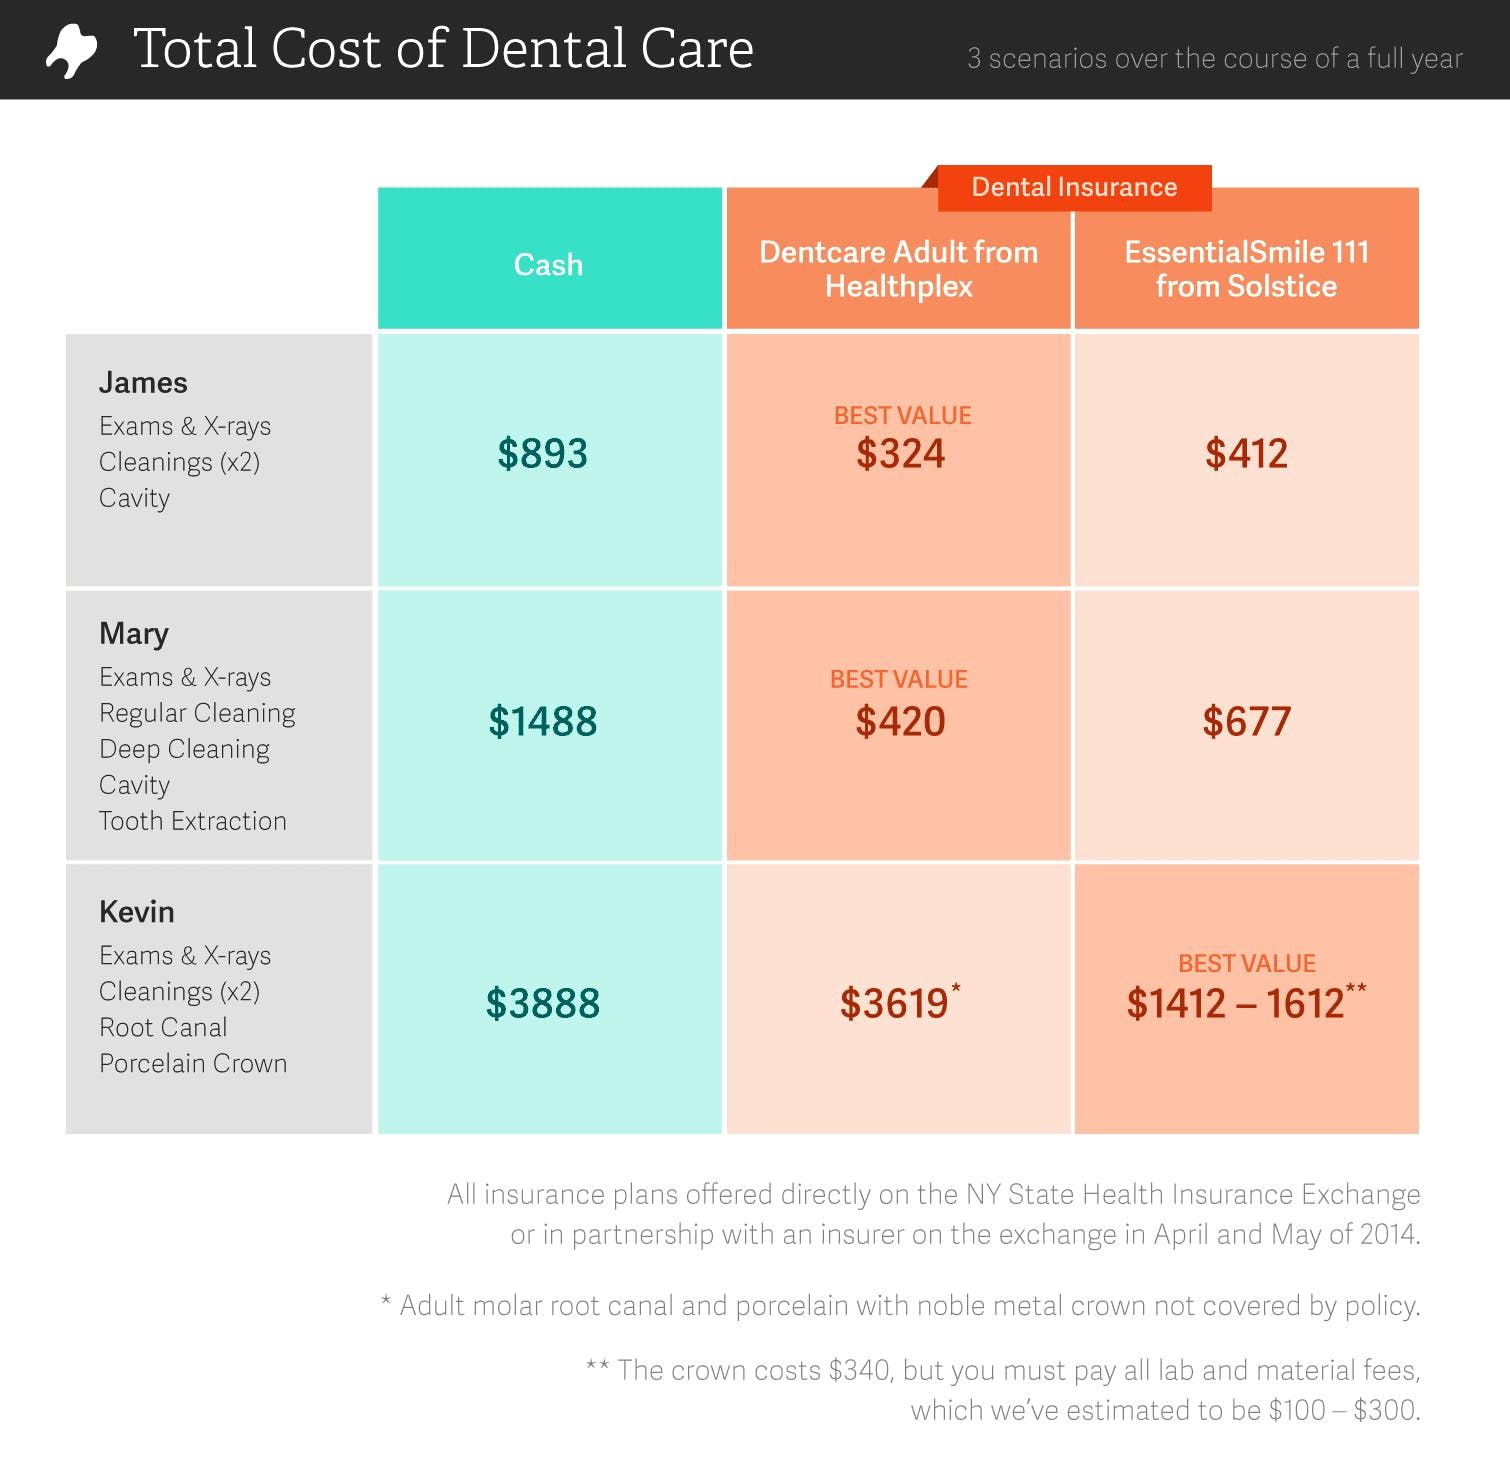 Dental Insurance Vs Dental Discount Plans Compared Dental Discount Dental Insurance Plans Dental Insurance